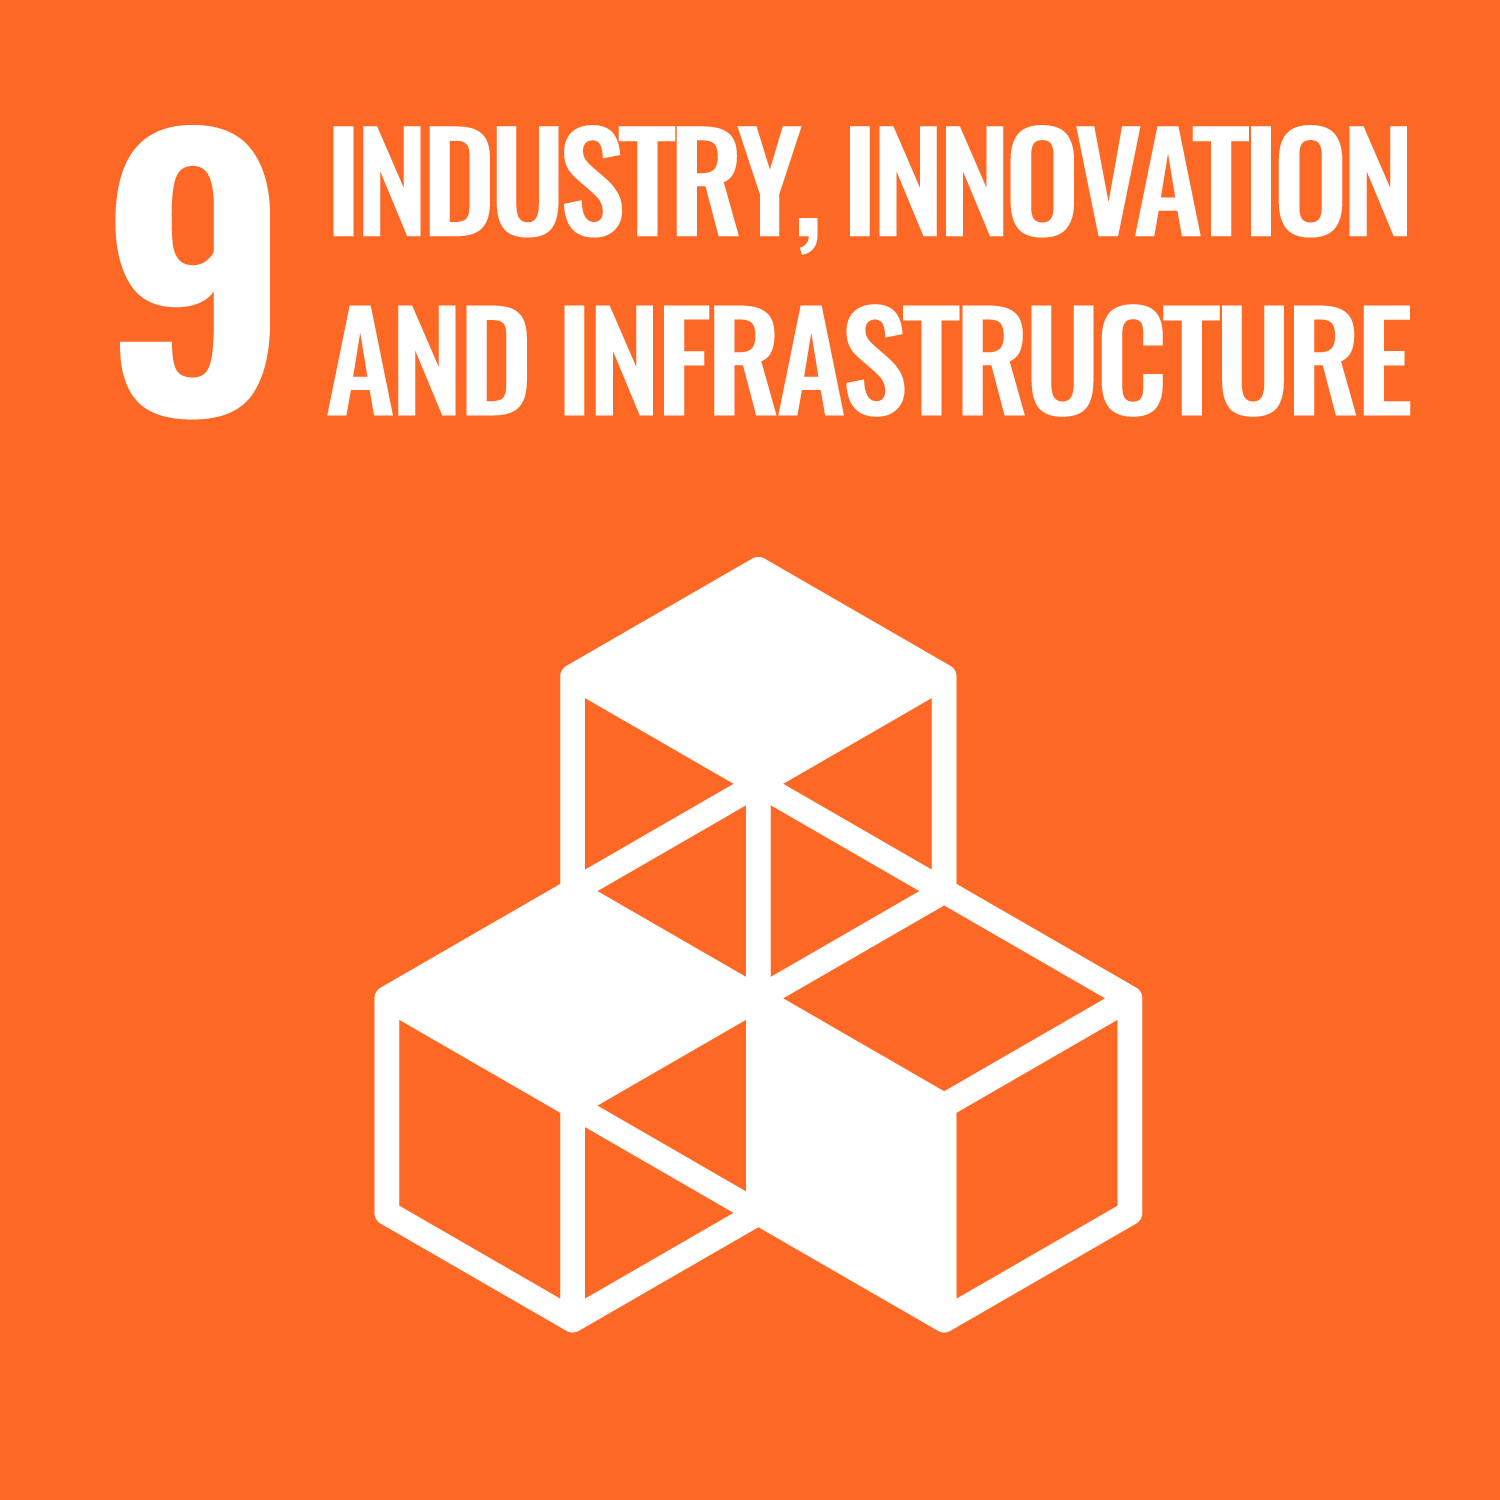 Sustainable Development Goals – Industry, Innovation and Infrastructure